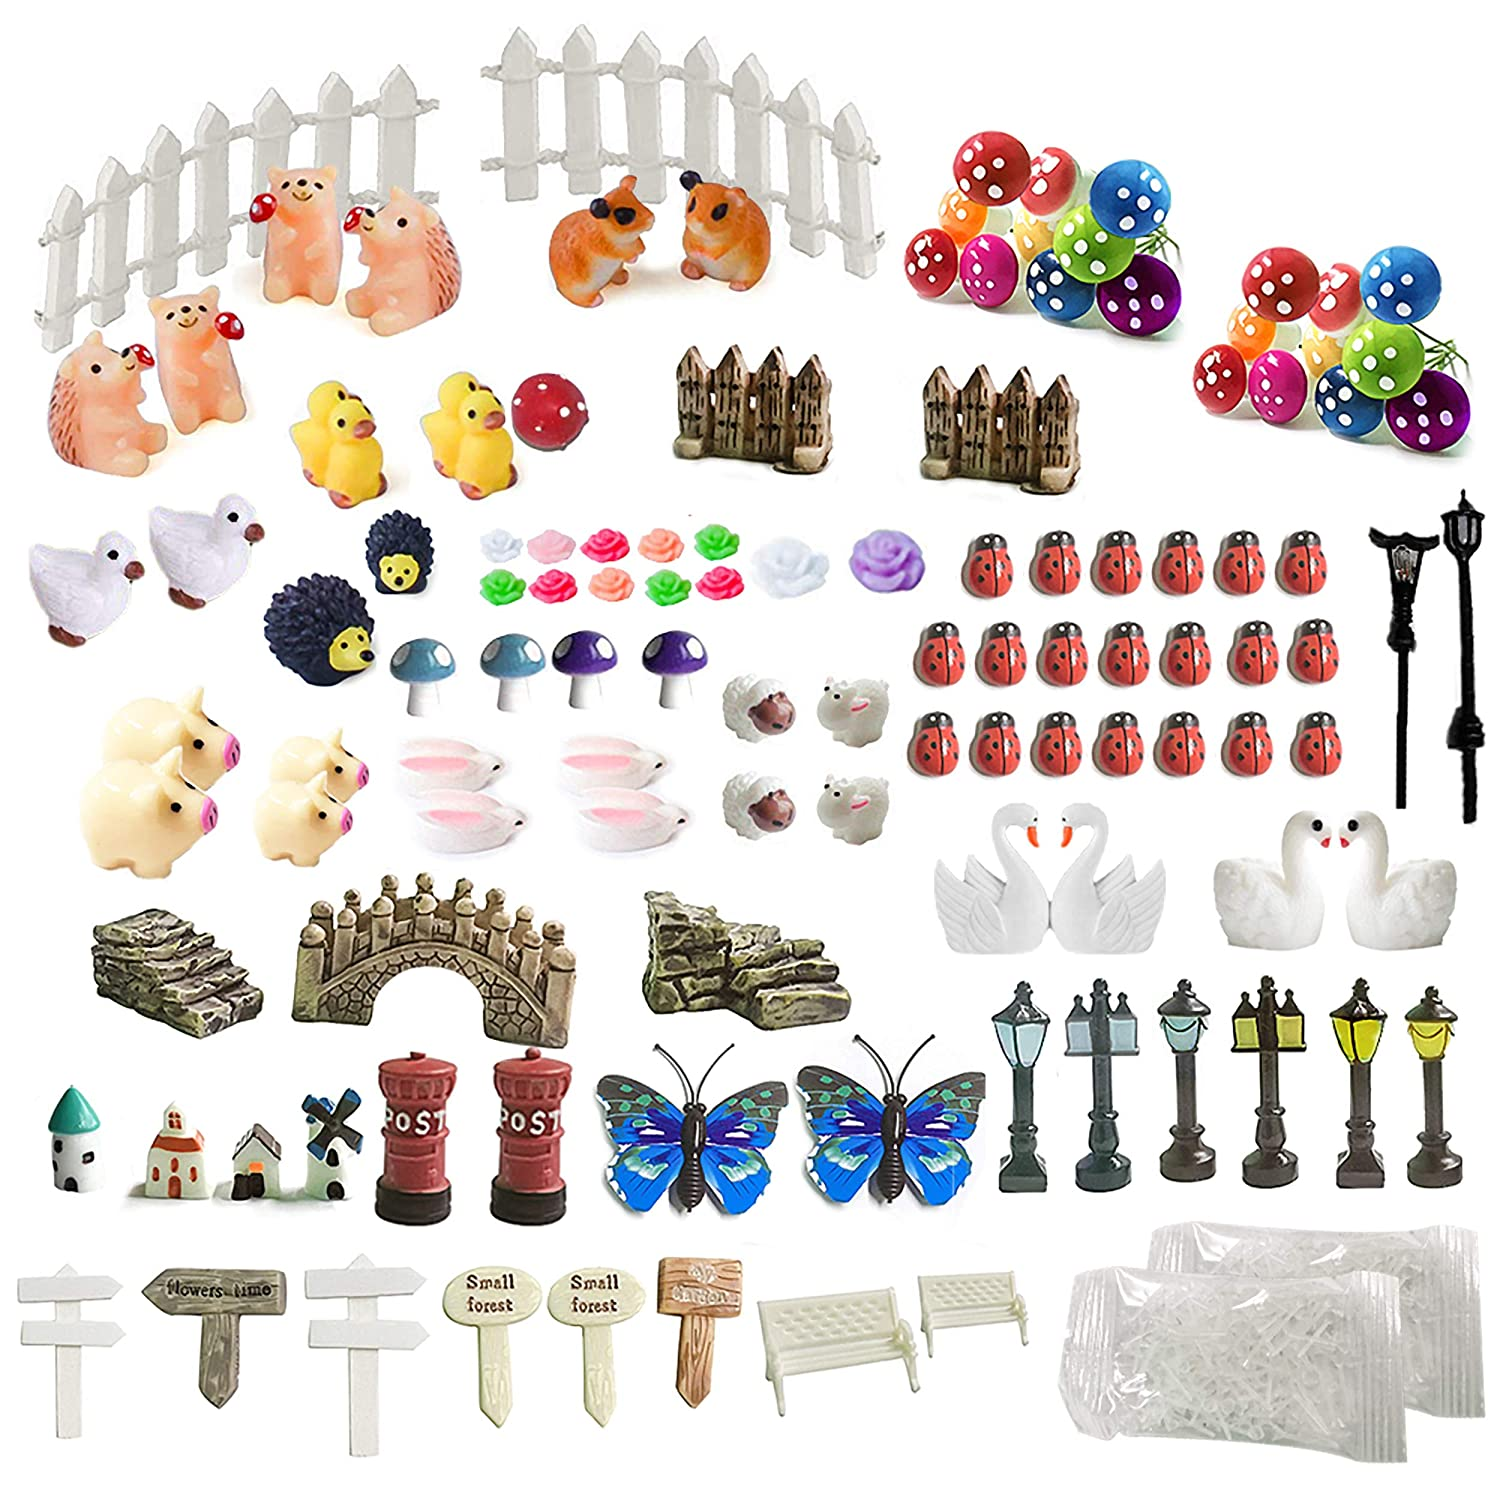 ZJW 112 Pieces Miniature Fairy Garden Decorations, DIY Micro Landscape Ornaments Kit, Include Mini Animals, Mushrooms, Lights, and Fence